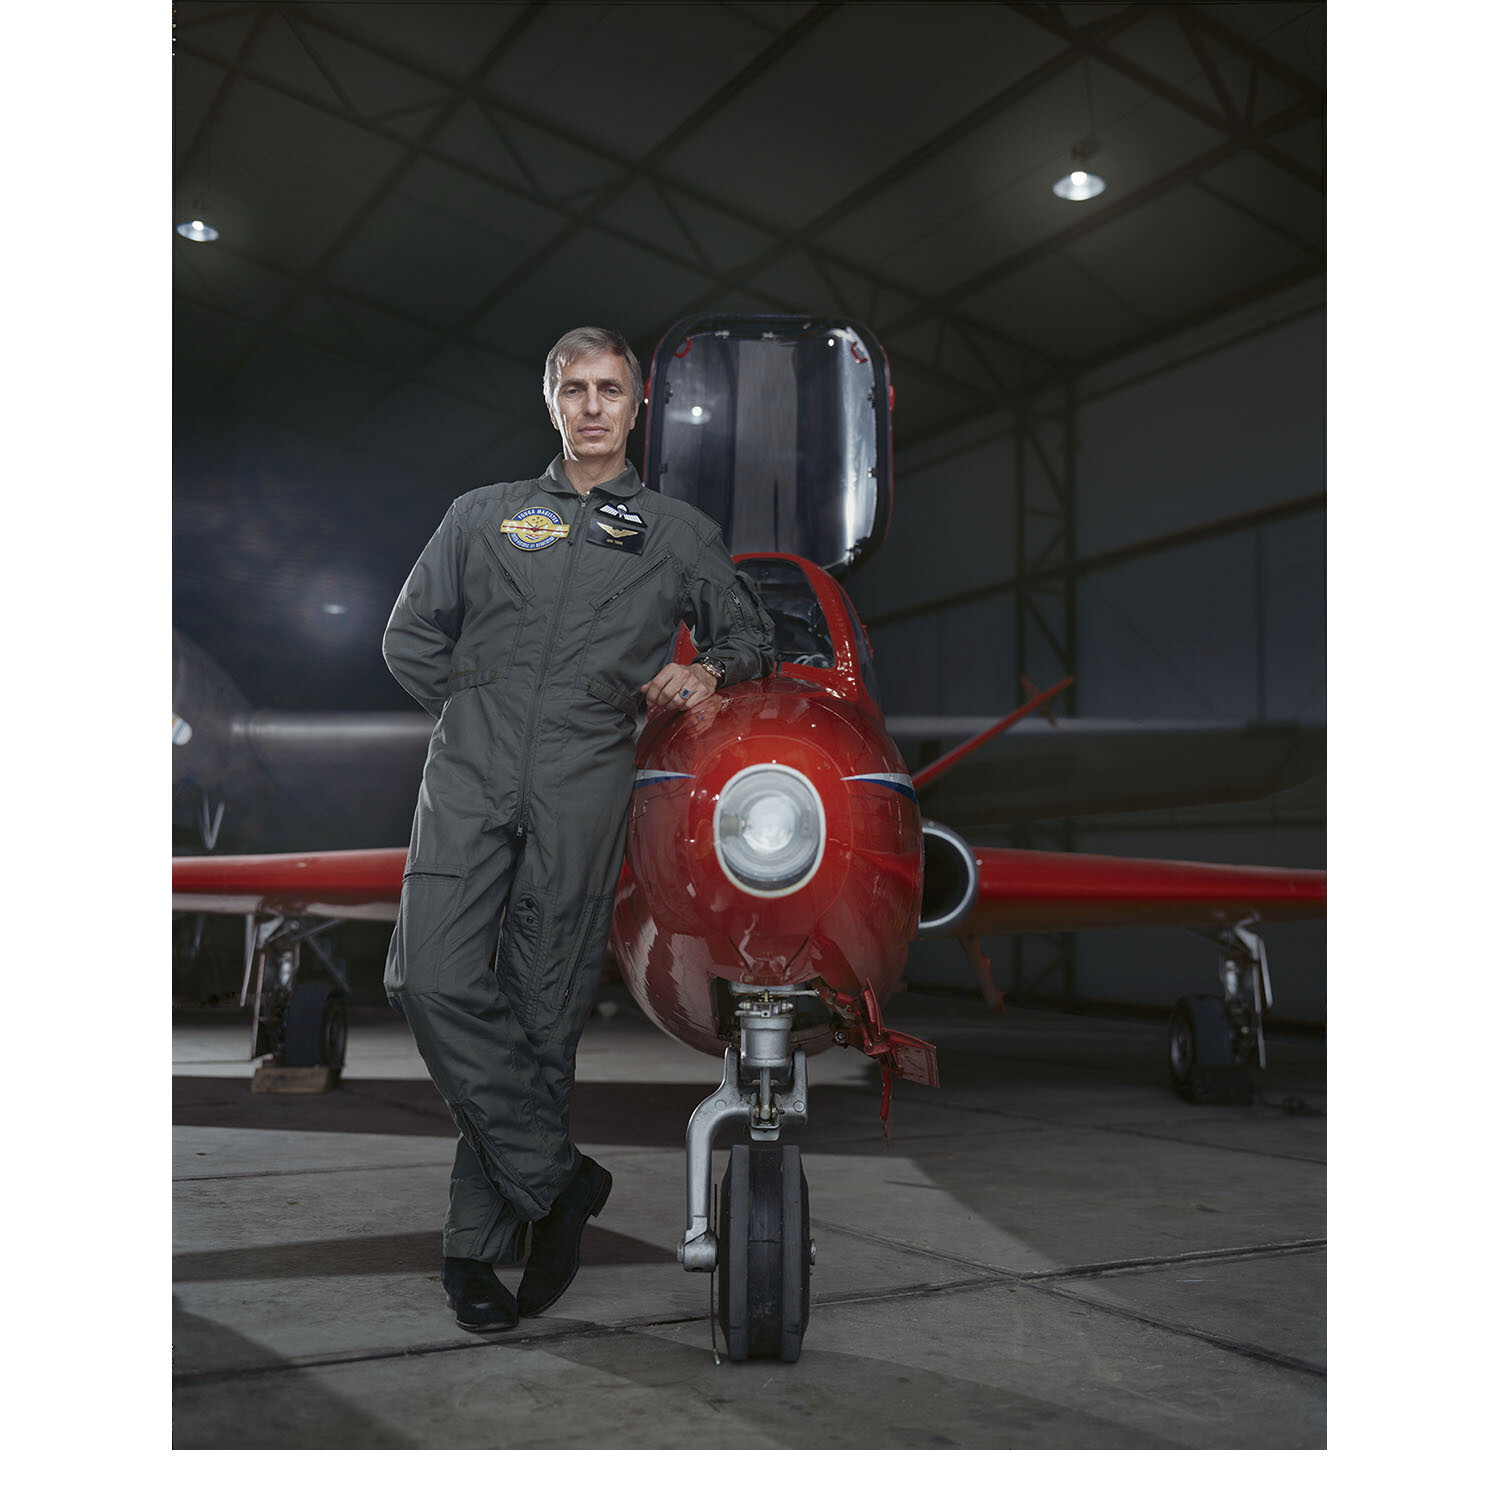 Eric Tierie - Fouga Magister Plain editorial for Bond Magazine. Shot on 4x5 inch film.